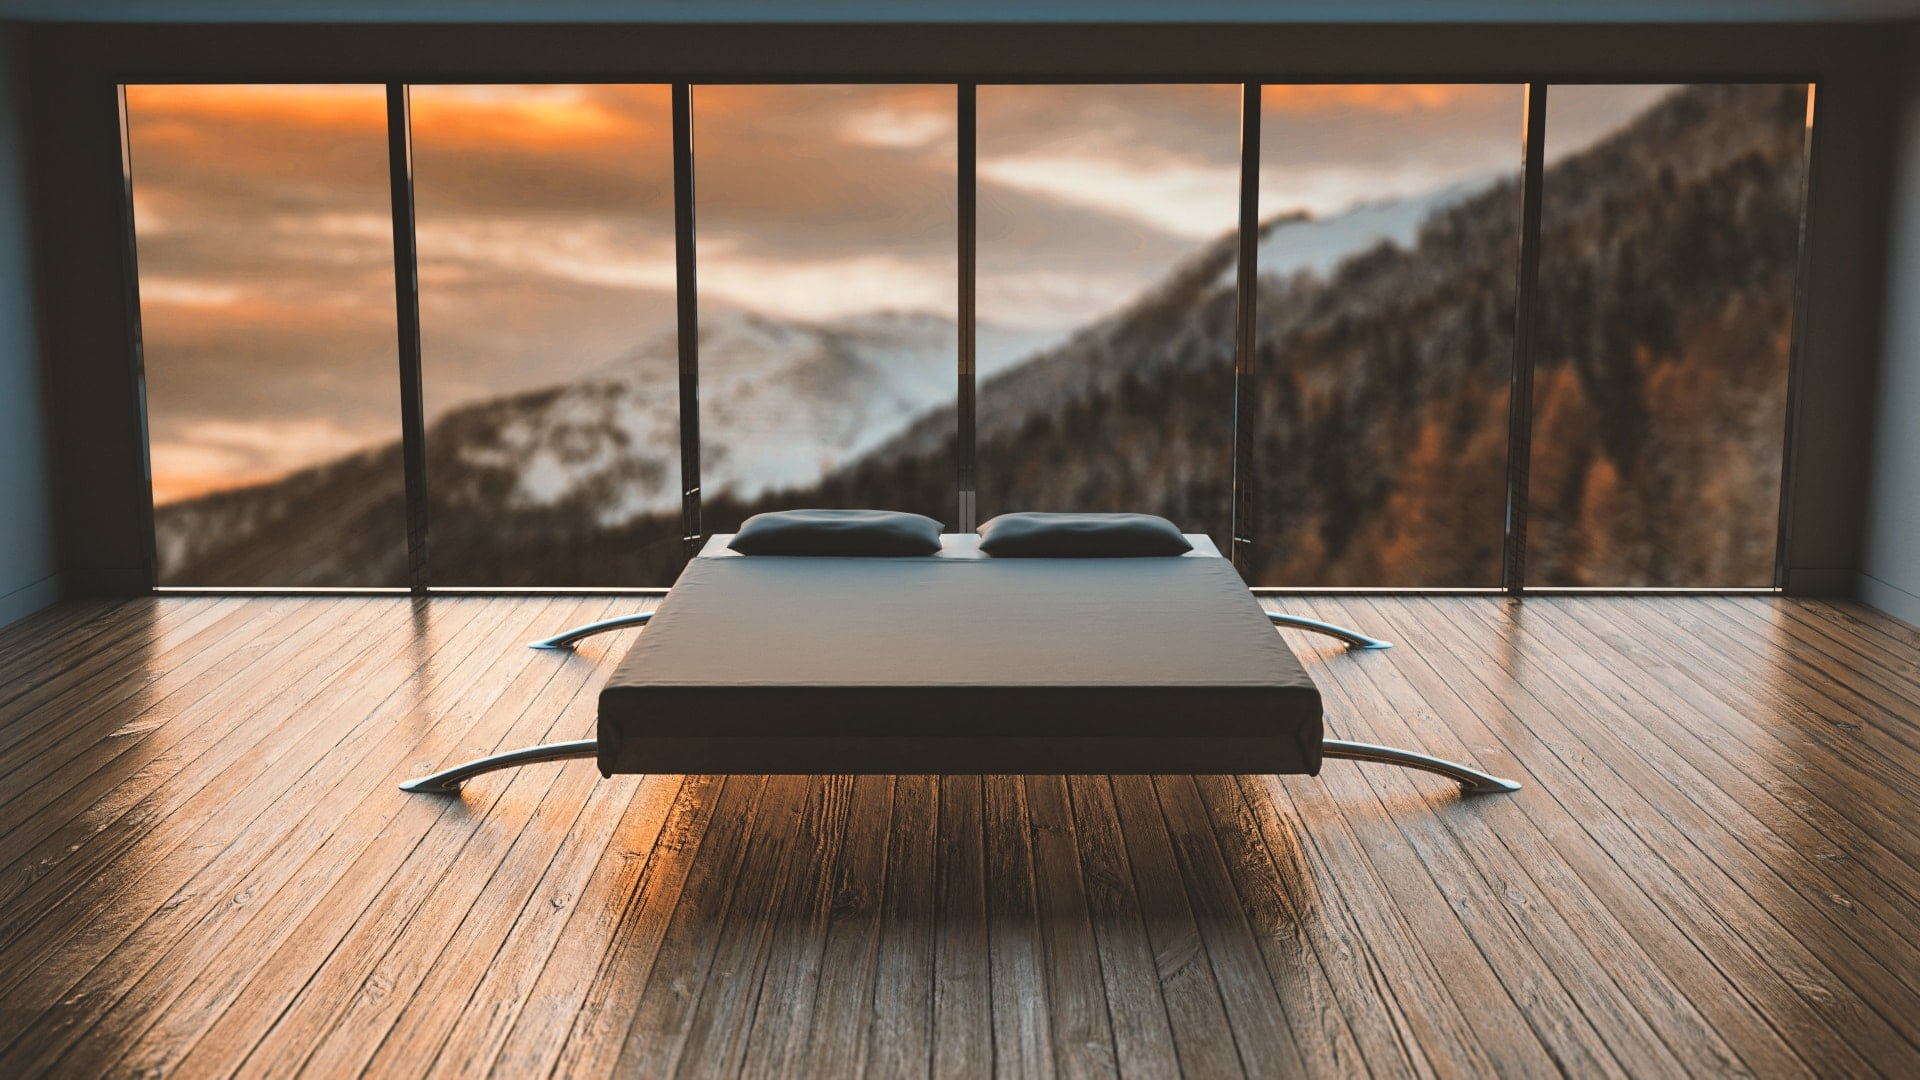 Healthy Buildings and OLED Lighting: The Next Green Trend for Hotels | OLEDWorks